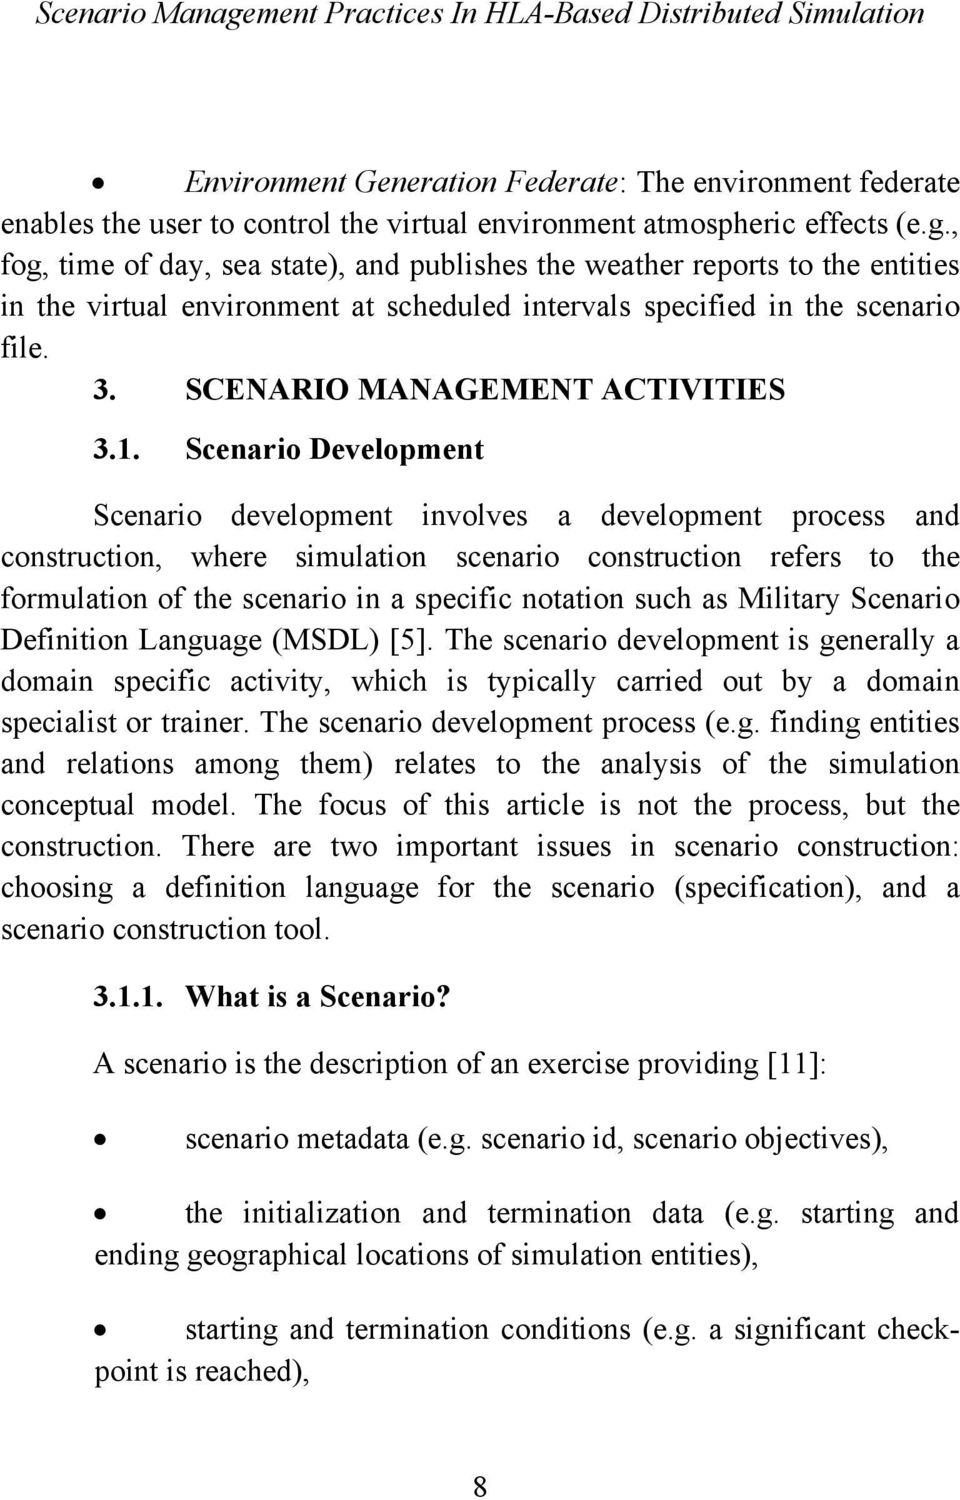 SCENARIO MANAGEMENT ACTIVITIES 3.1.